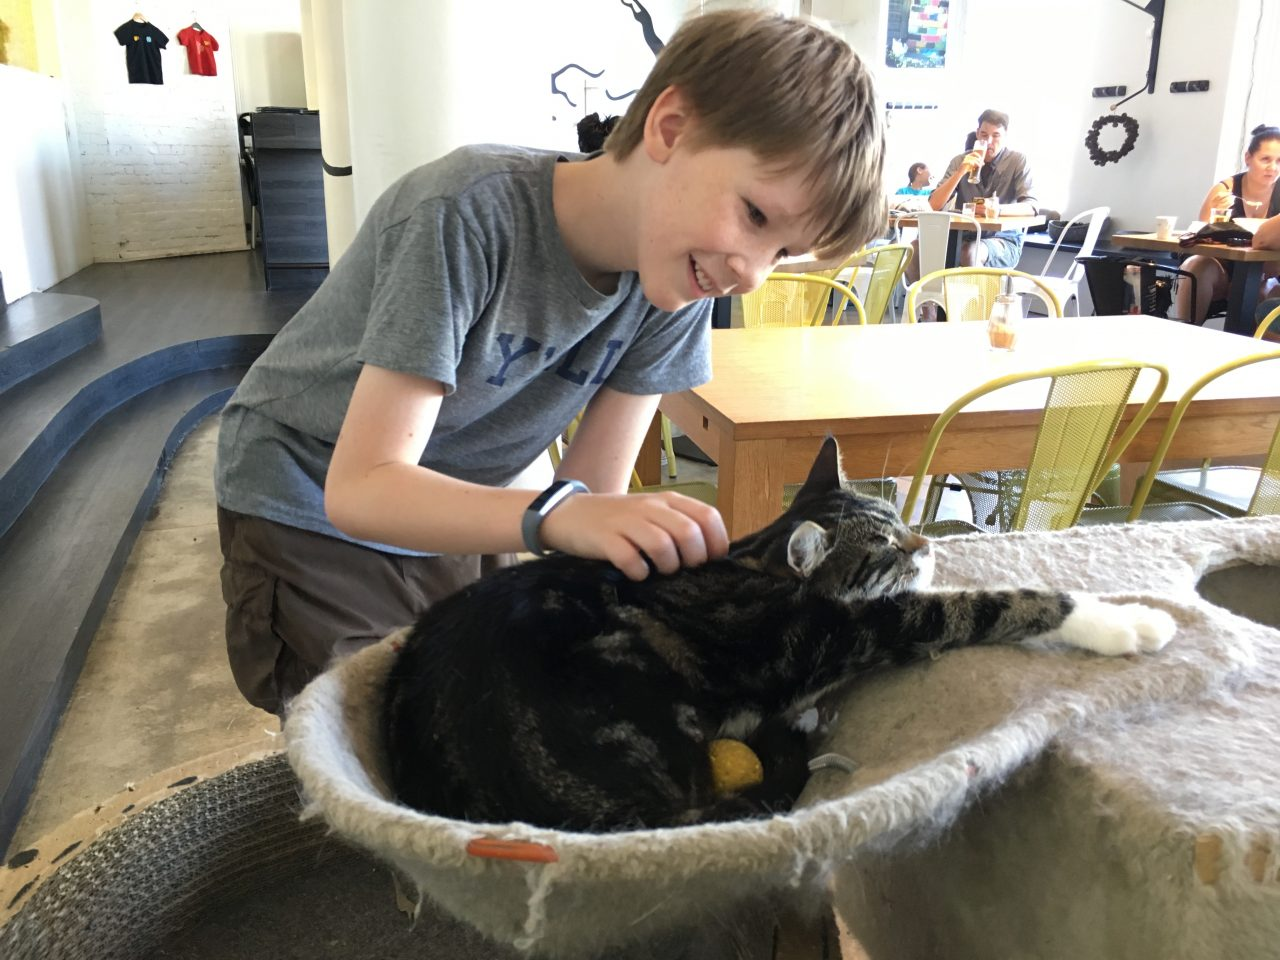 boy petting a cat in a cat cafe in Tallinn Estonia